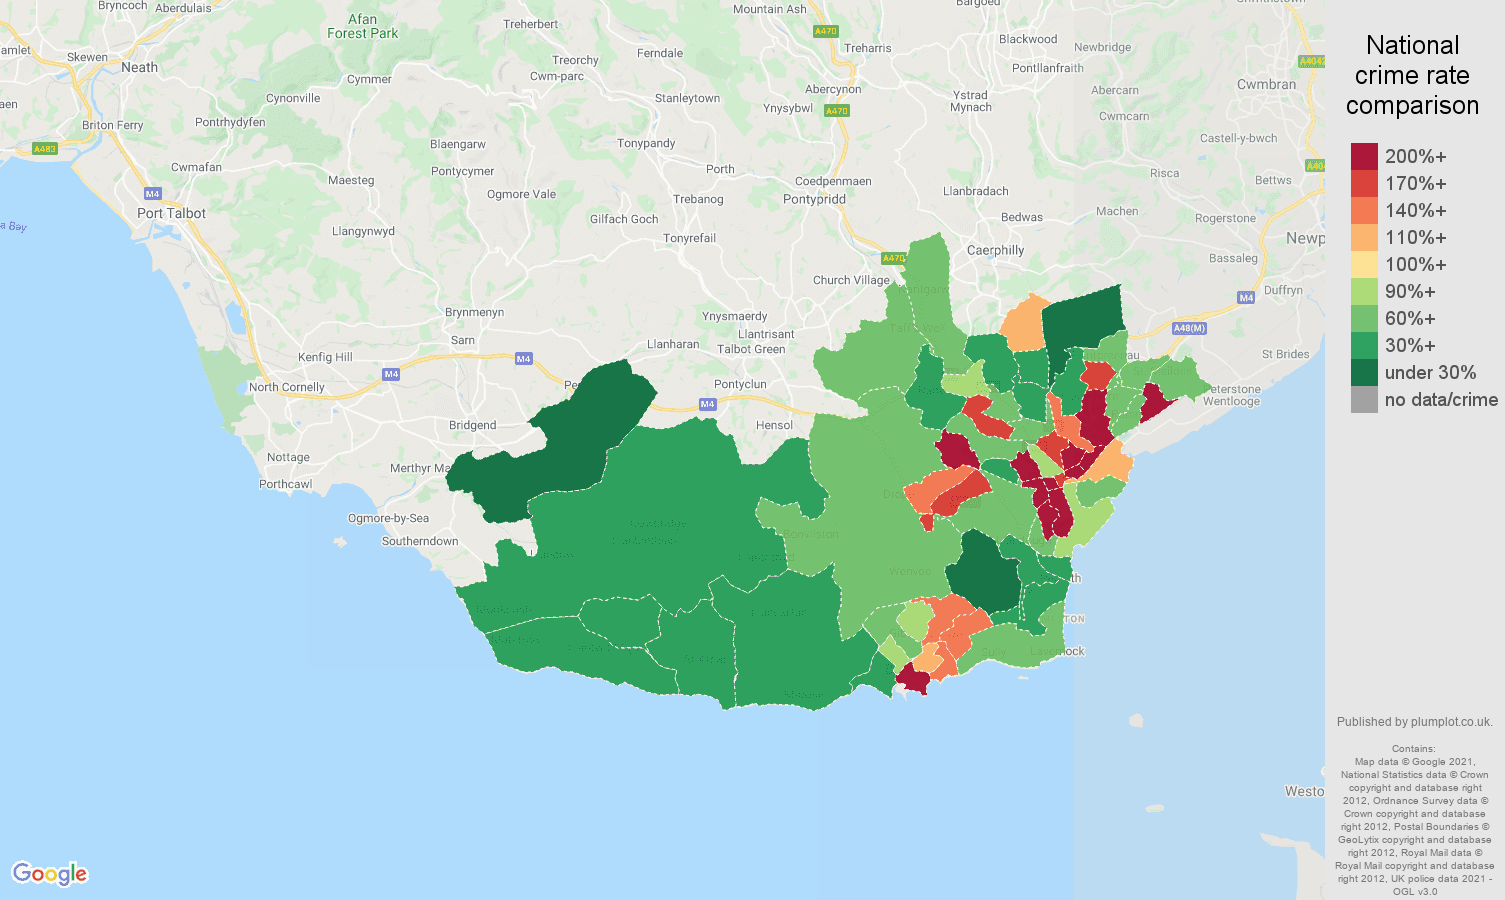 South Glamorgan drugs crime rate comparison map